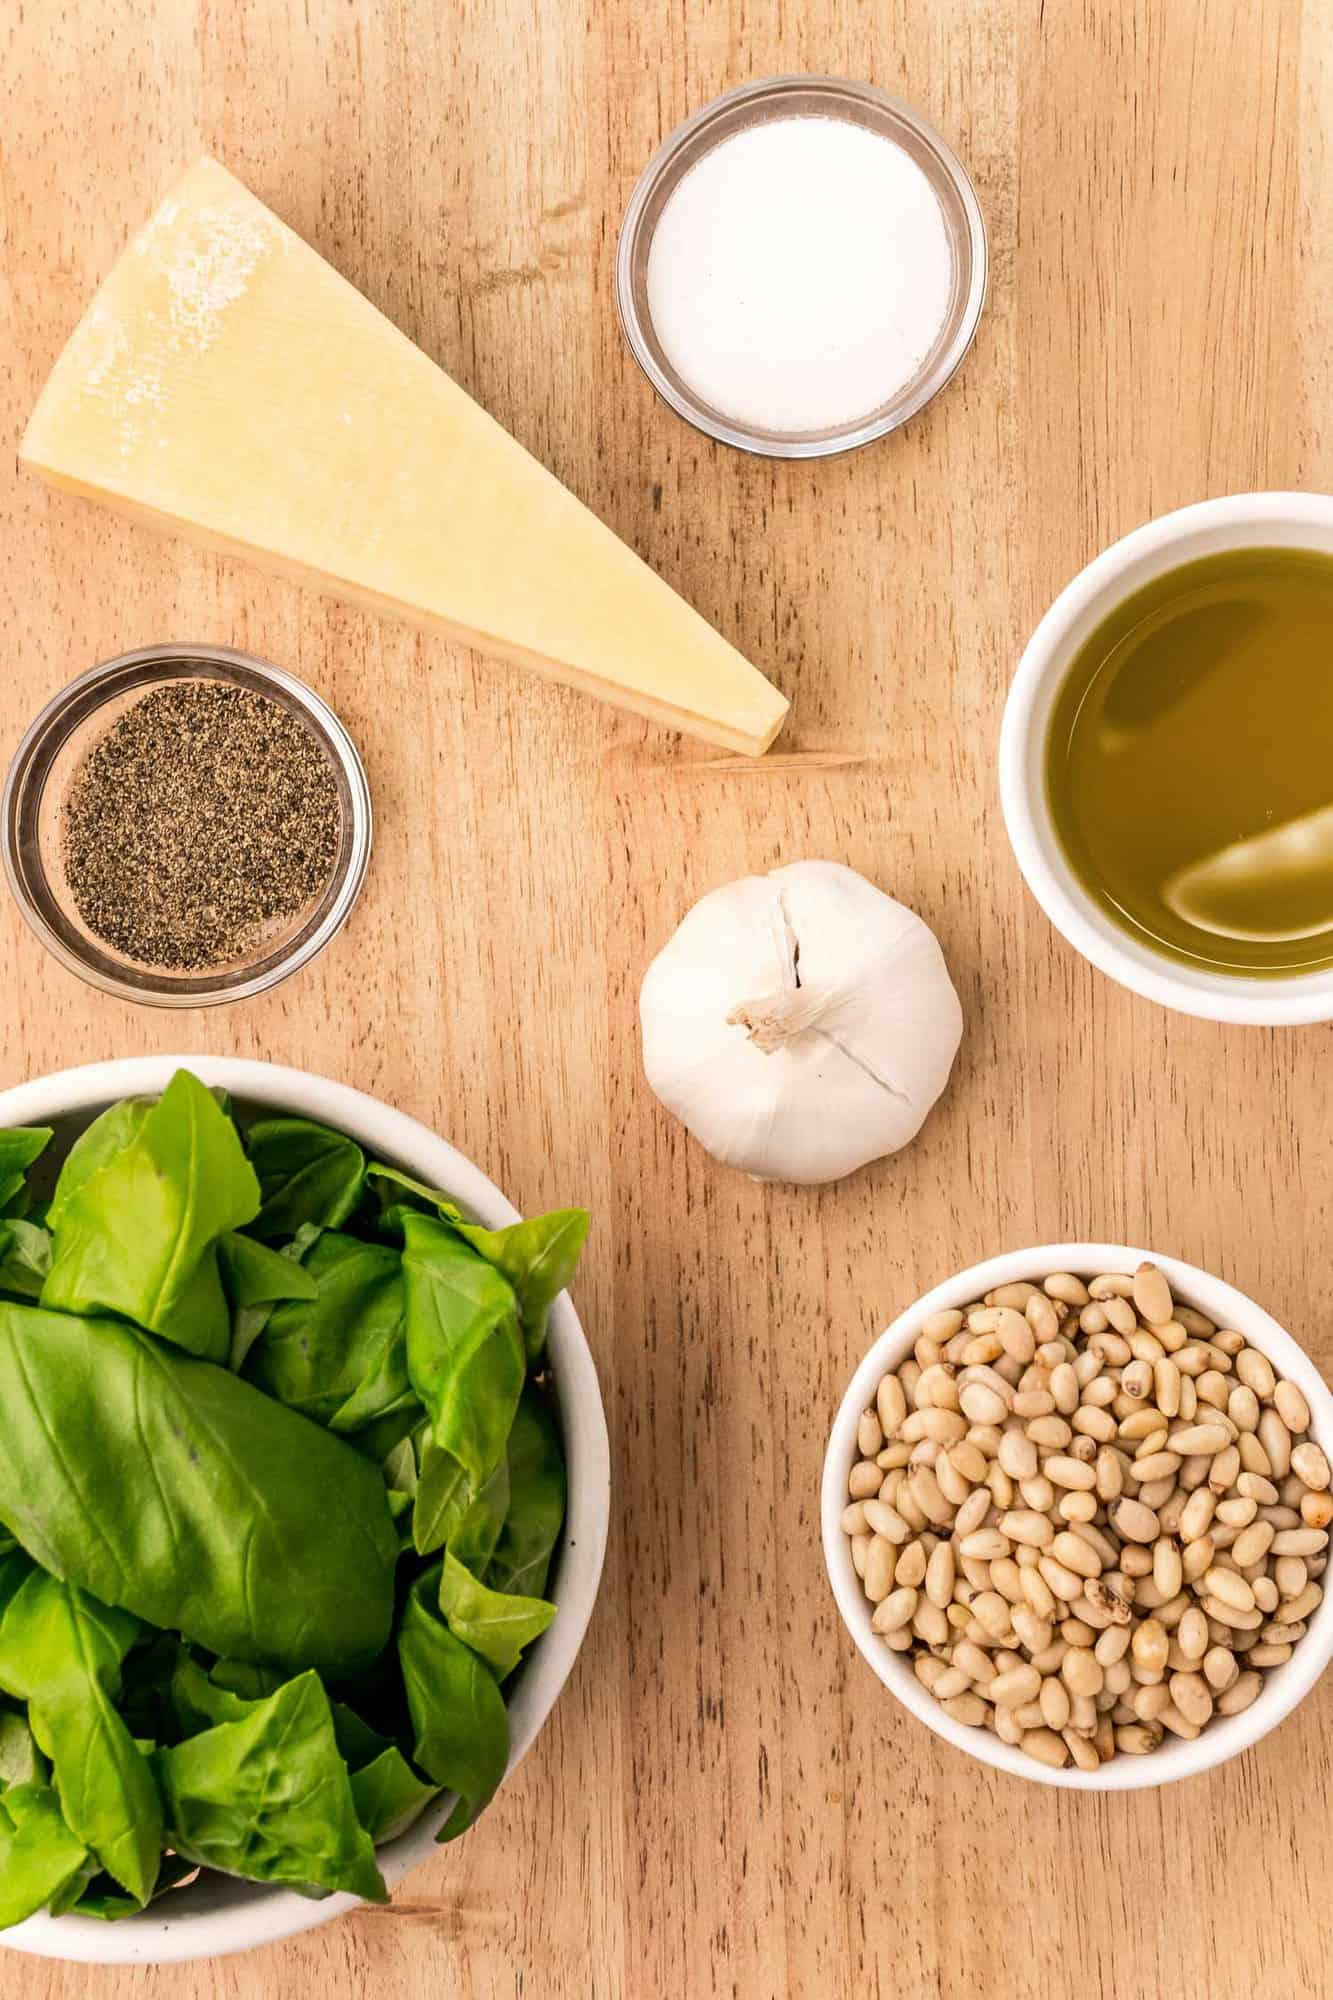 Overhead view of ingredients needed for recipe: basil, cheese, pine nuts, olive oil and garlic.